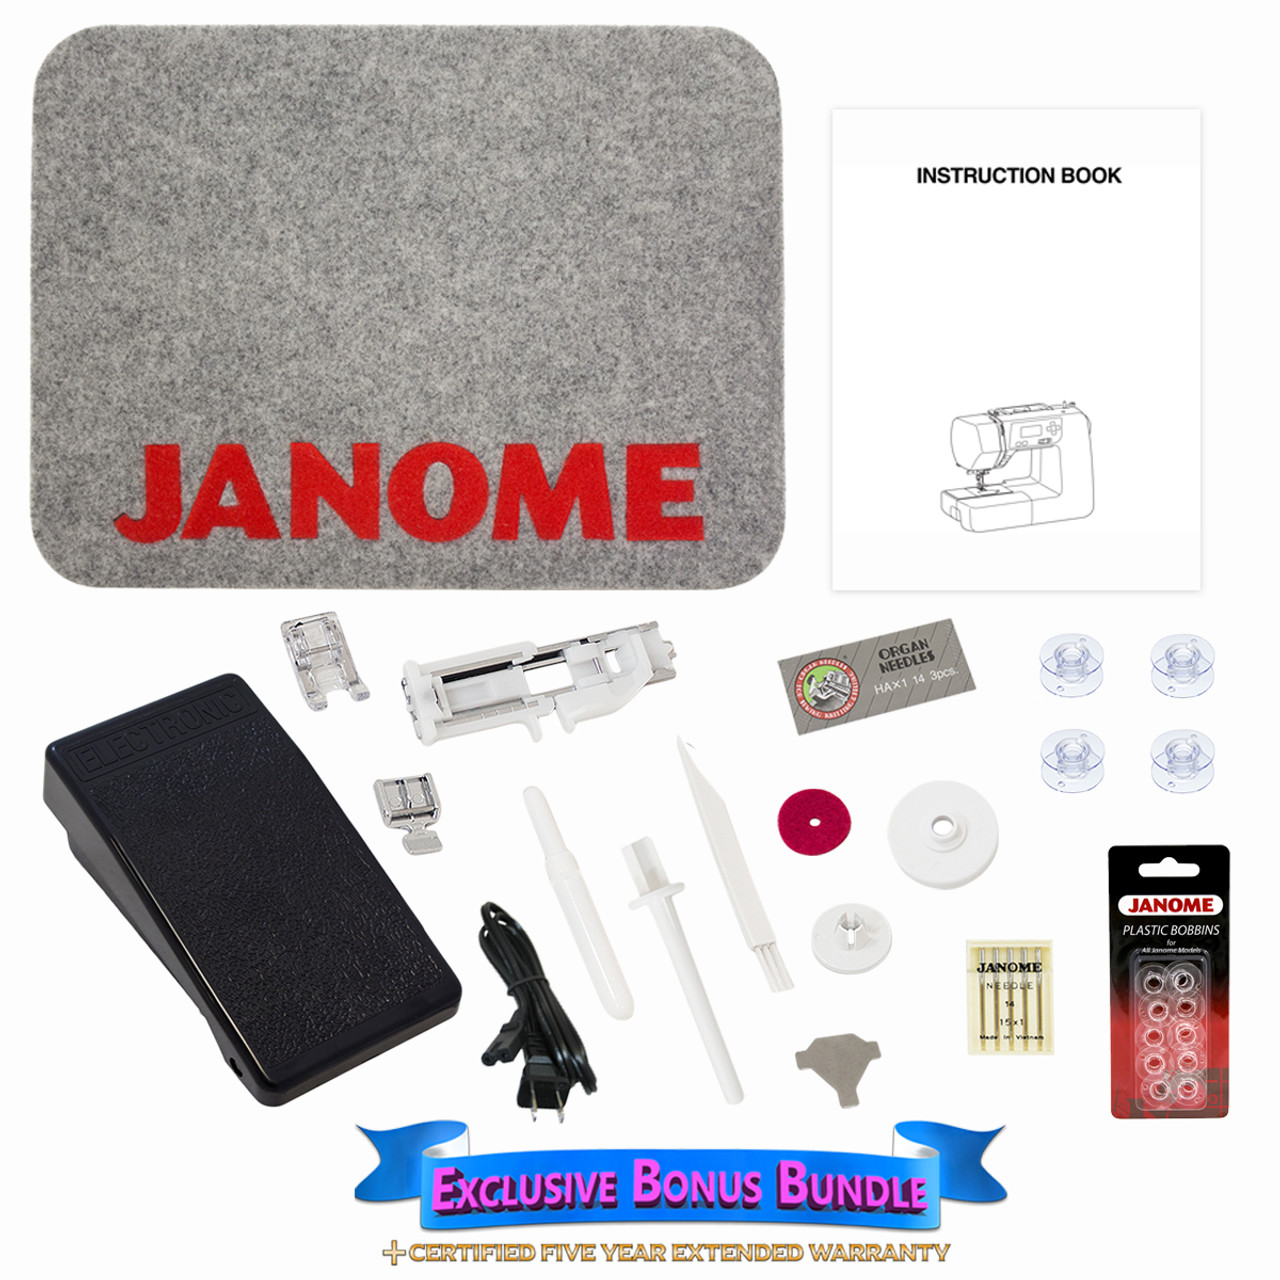 Janome dc1018 sewing machine with exclusive bonus bundle 29900 janome dc1018 sewing machine with exclusive bonus bundle 29900 free shipping fandeluxe Gallery